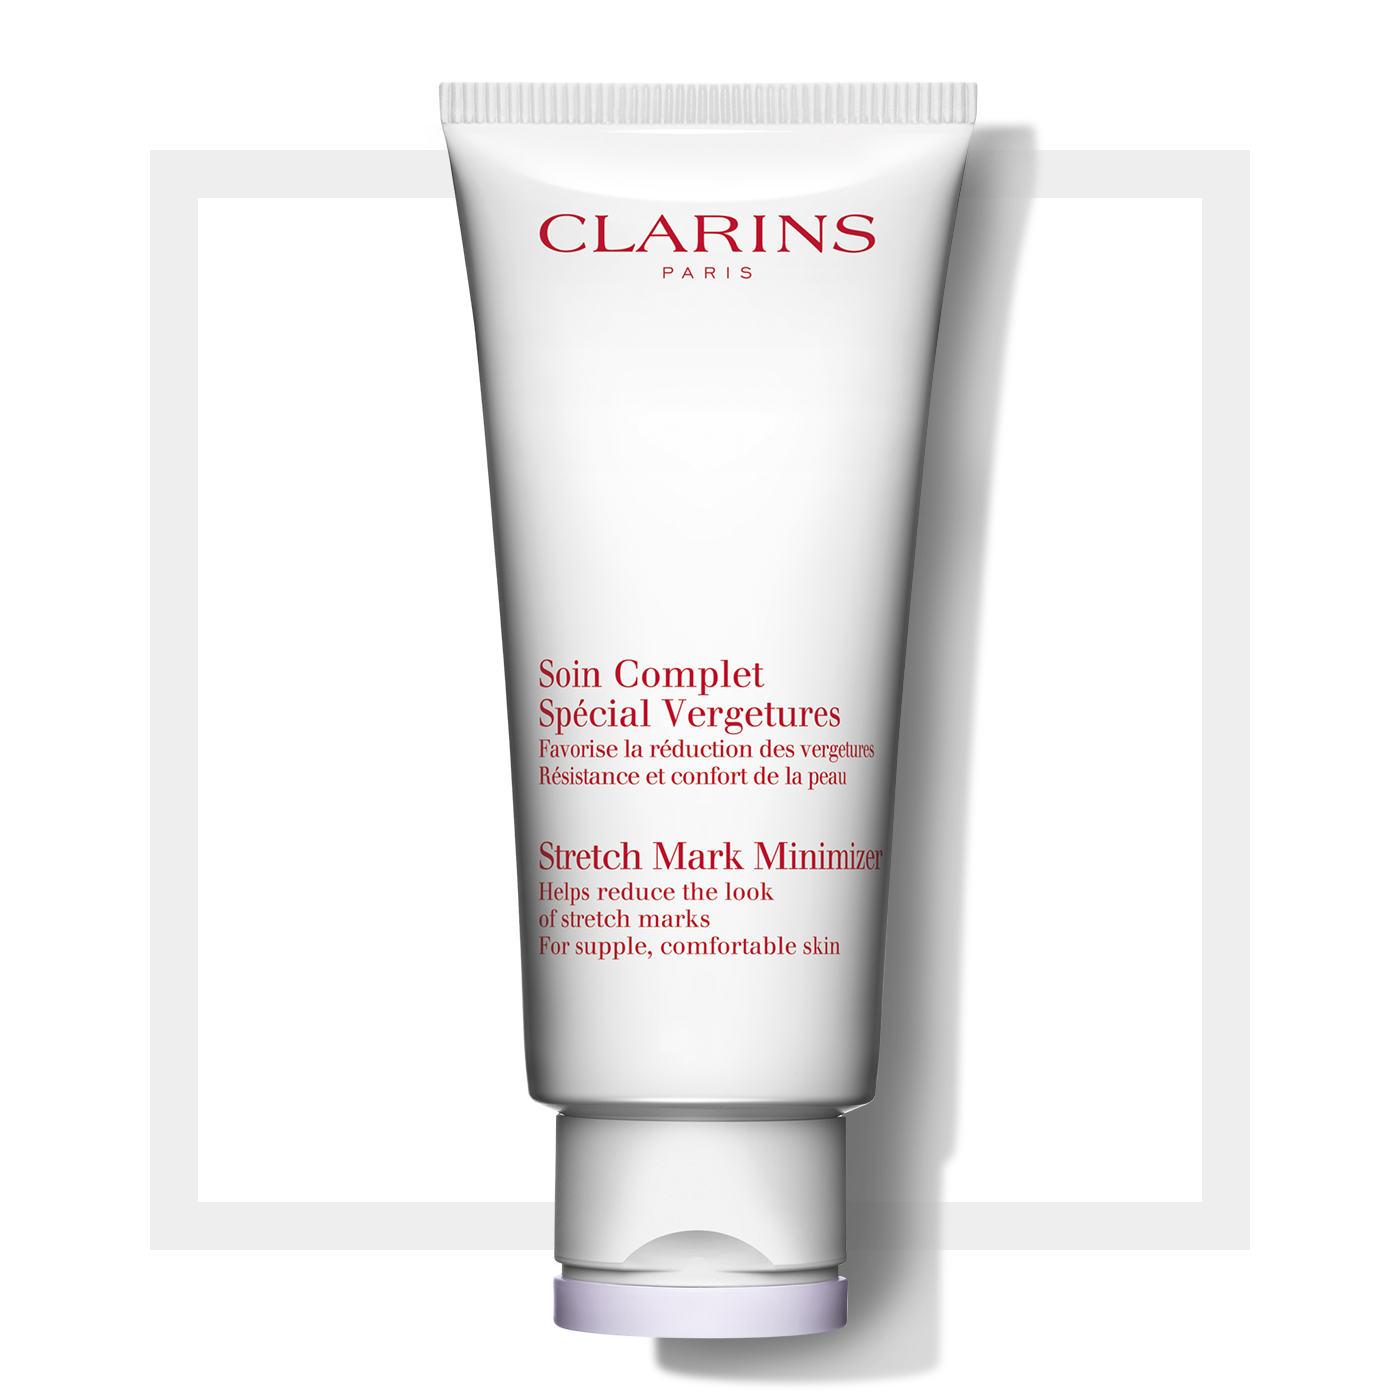 Stretch Mark Control Elasticity and Comfort, Body | Clarins